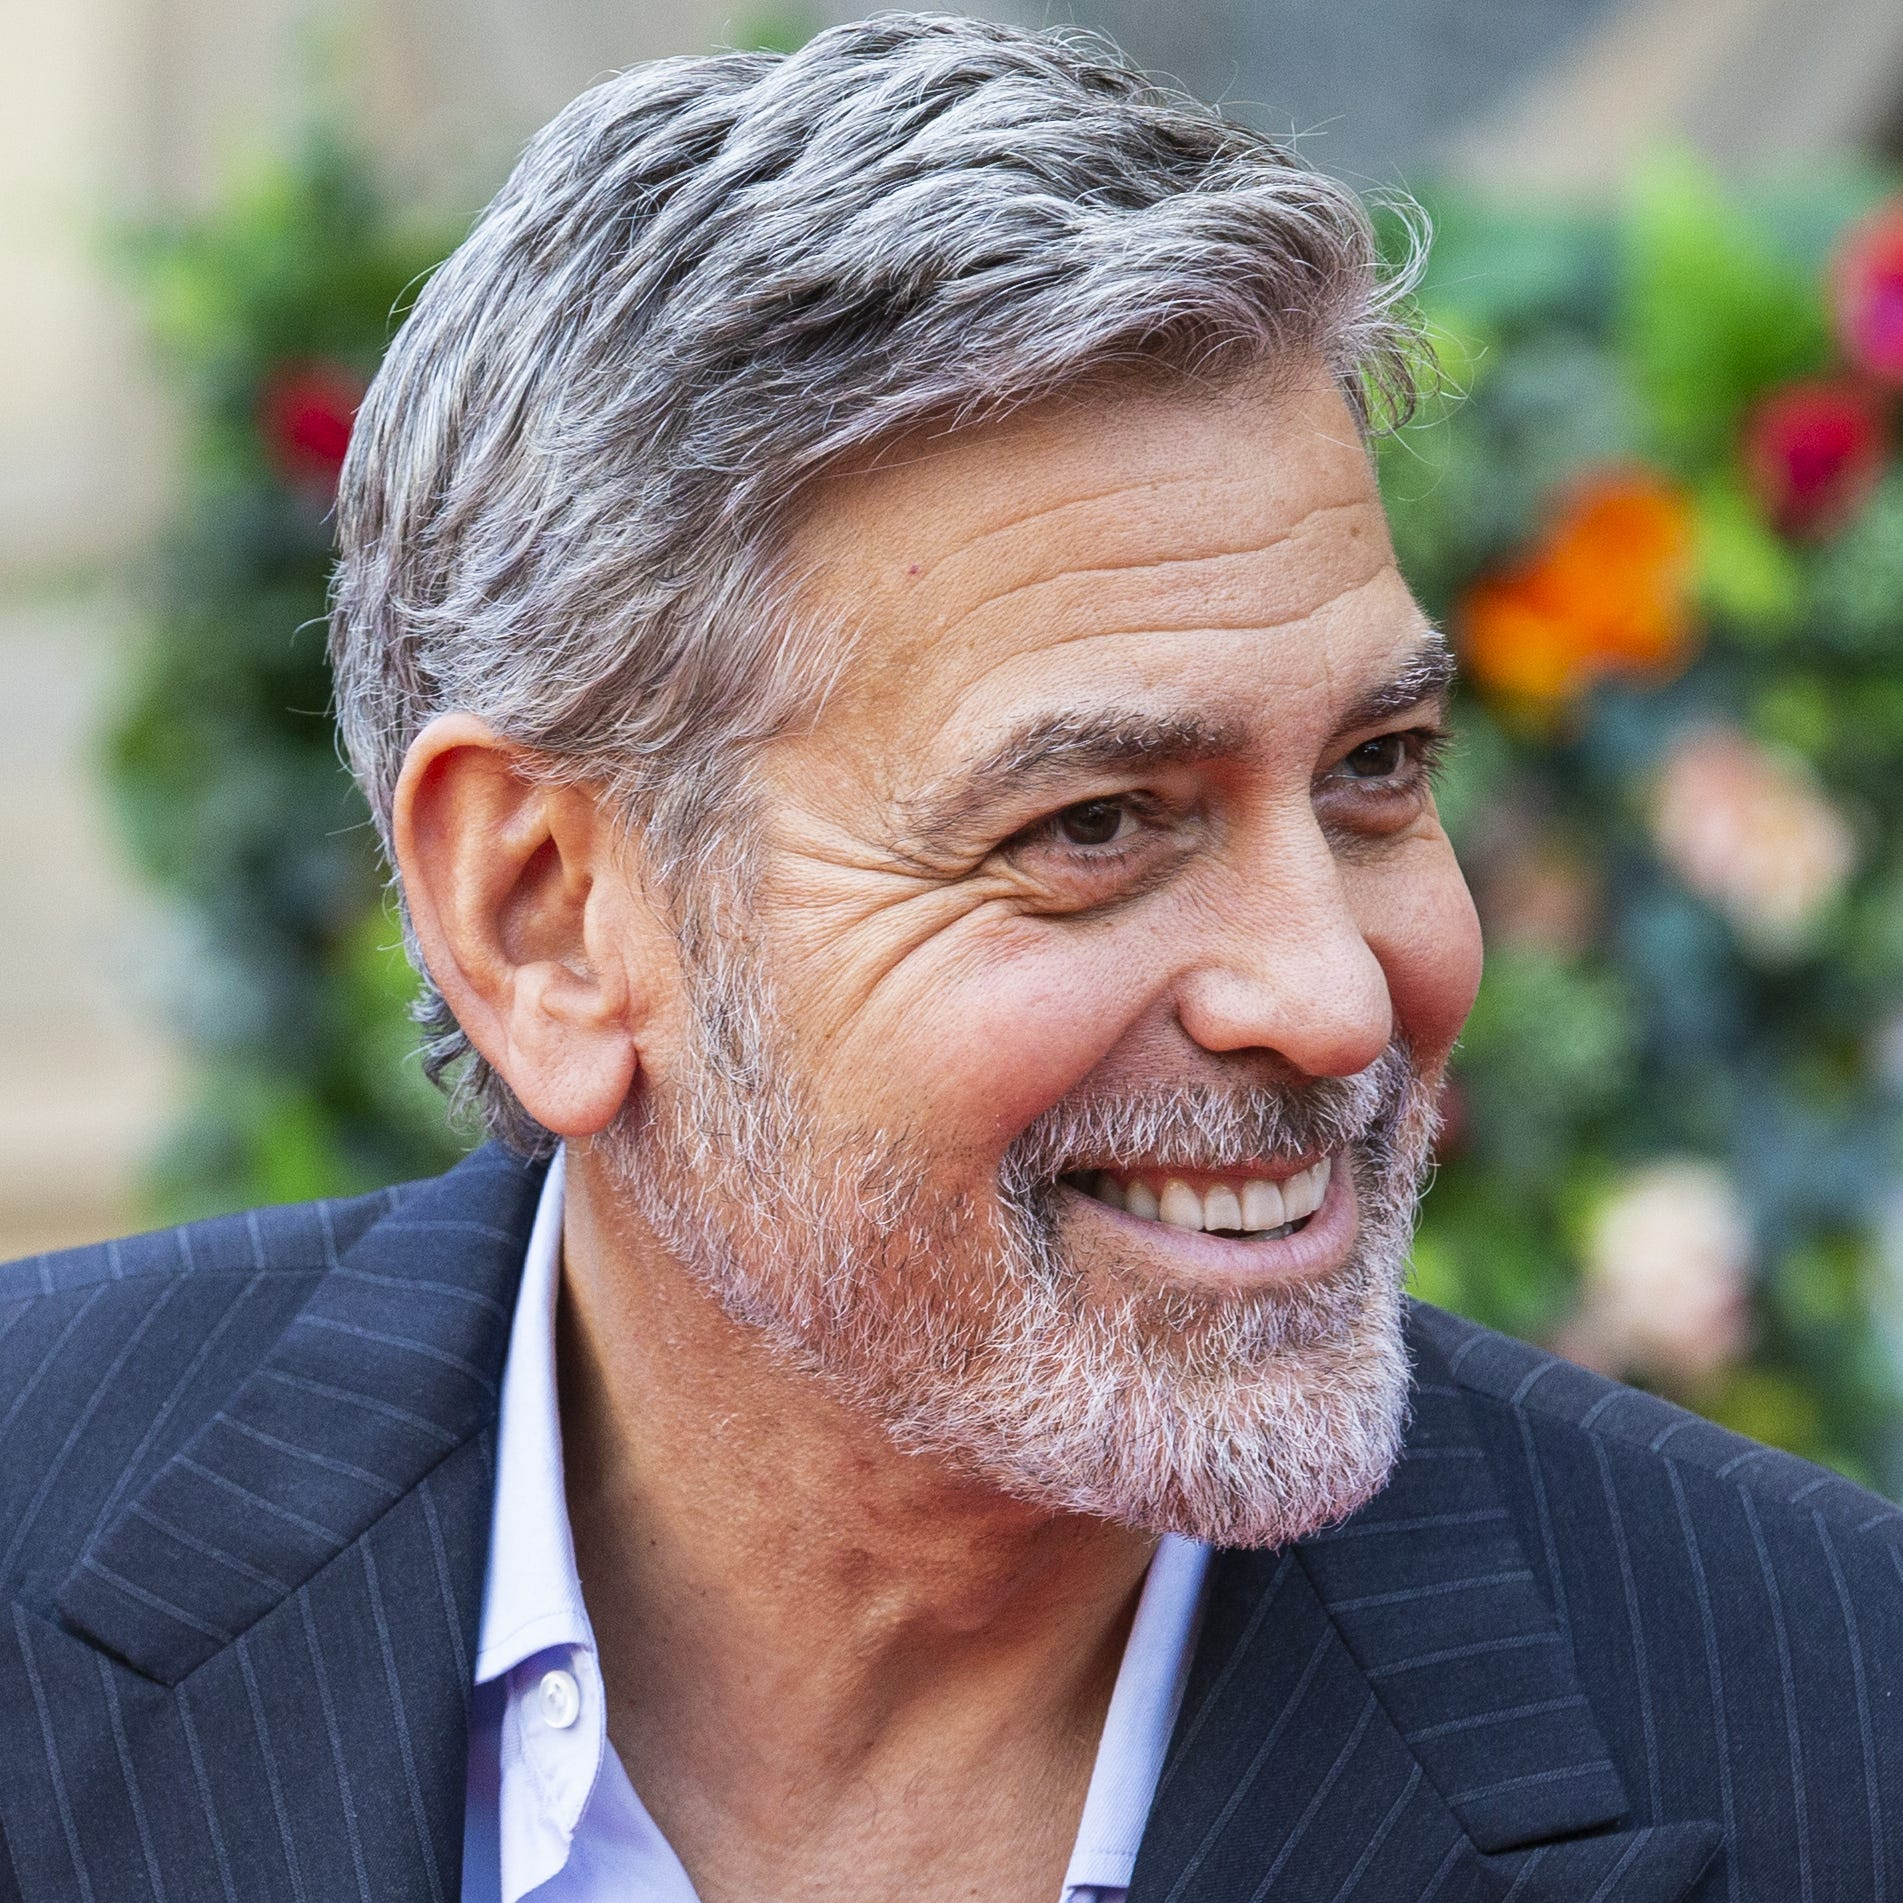 George Clooney opens up in Nashville on Kentucky roots, humanitarian focus and dirty diapers